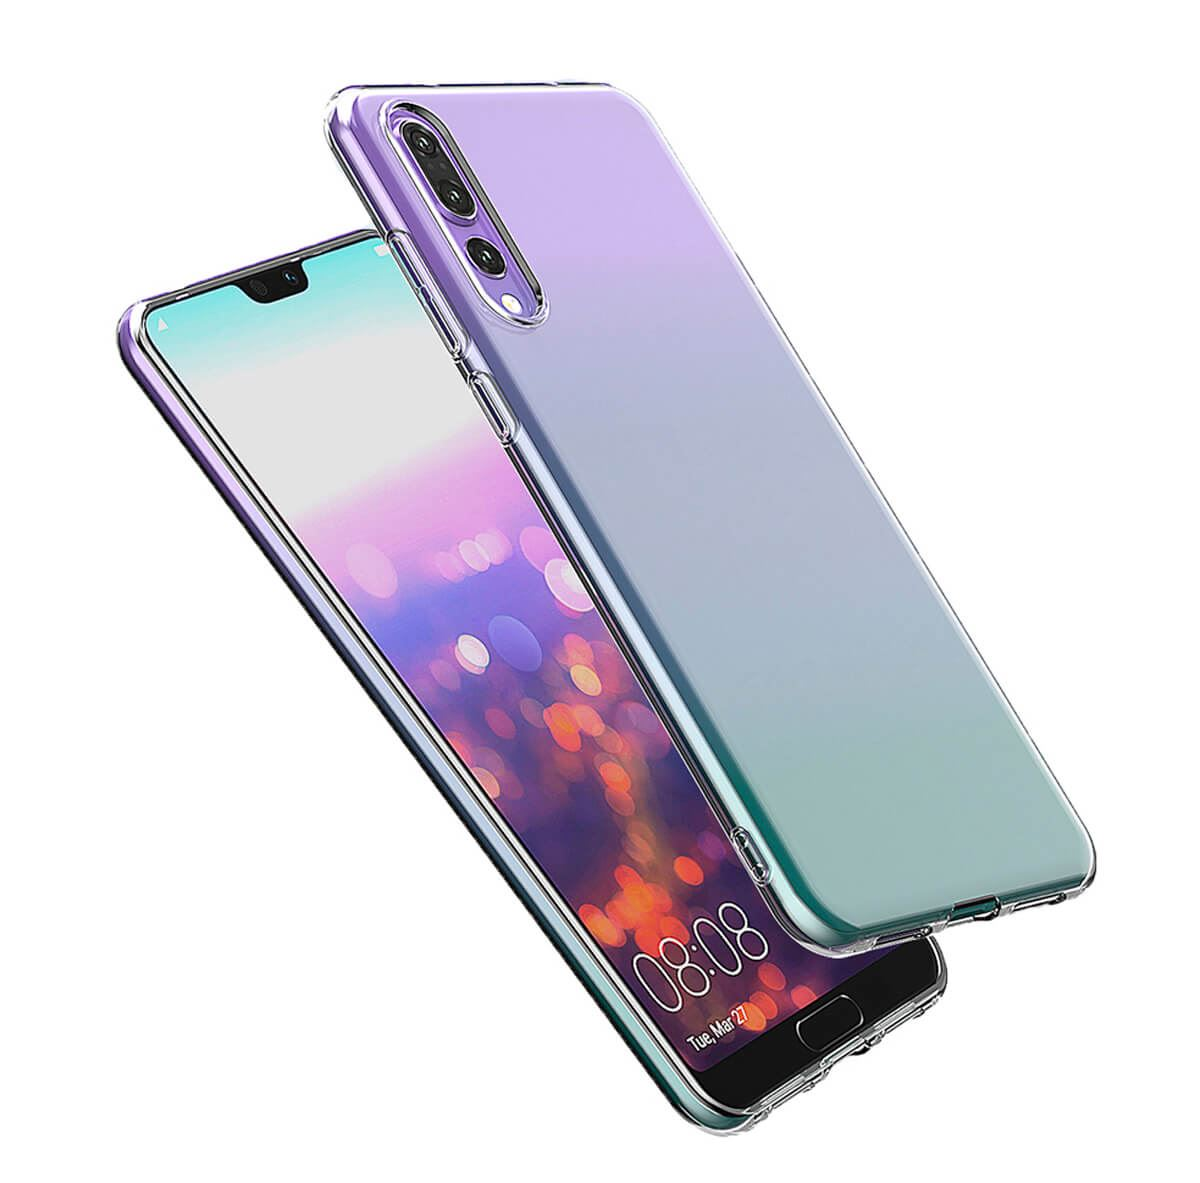 Shockproof-Silicone-Protective-Clear-Gel-Cover-Case-For-Huawei-P20-Pro-P-Smart thumbnail 40